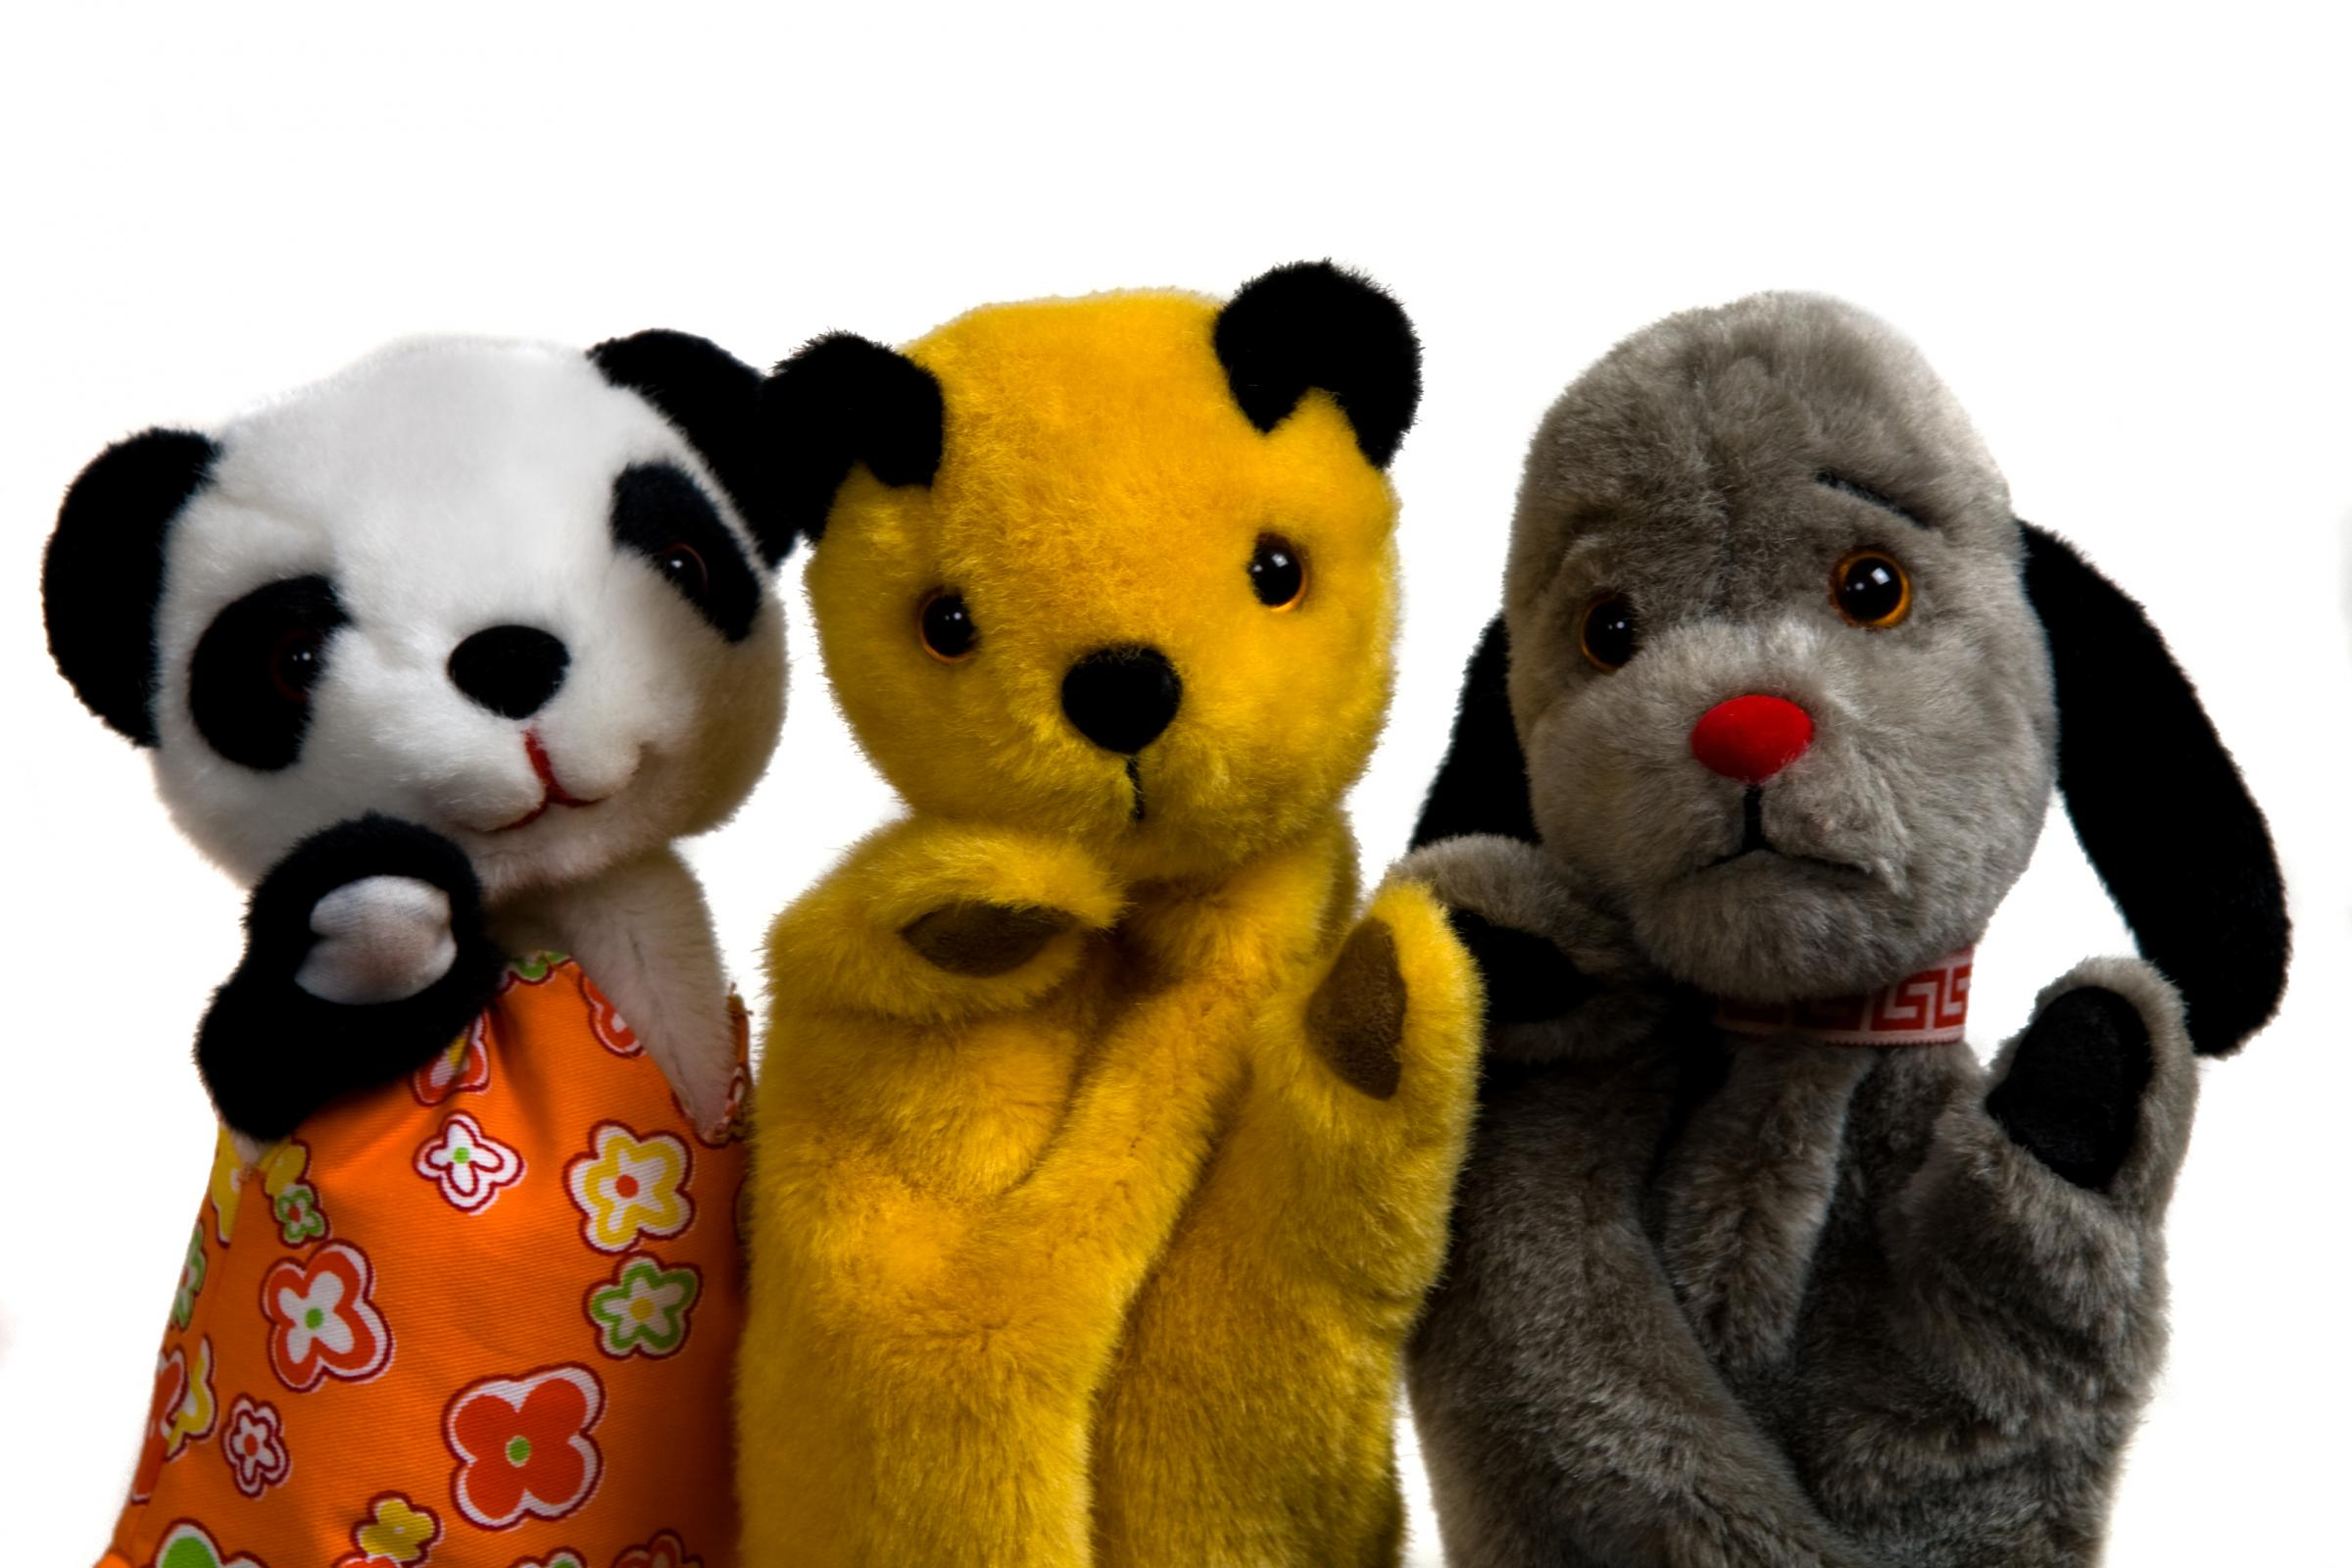 The Sooty tour is coming to Fareham